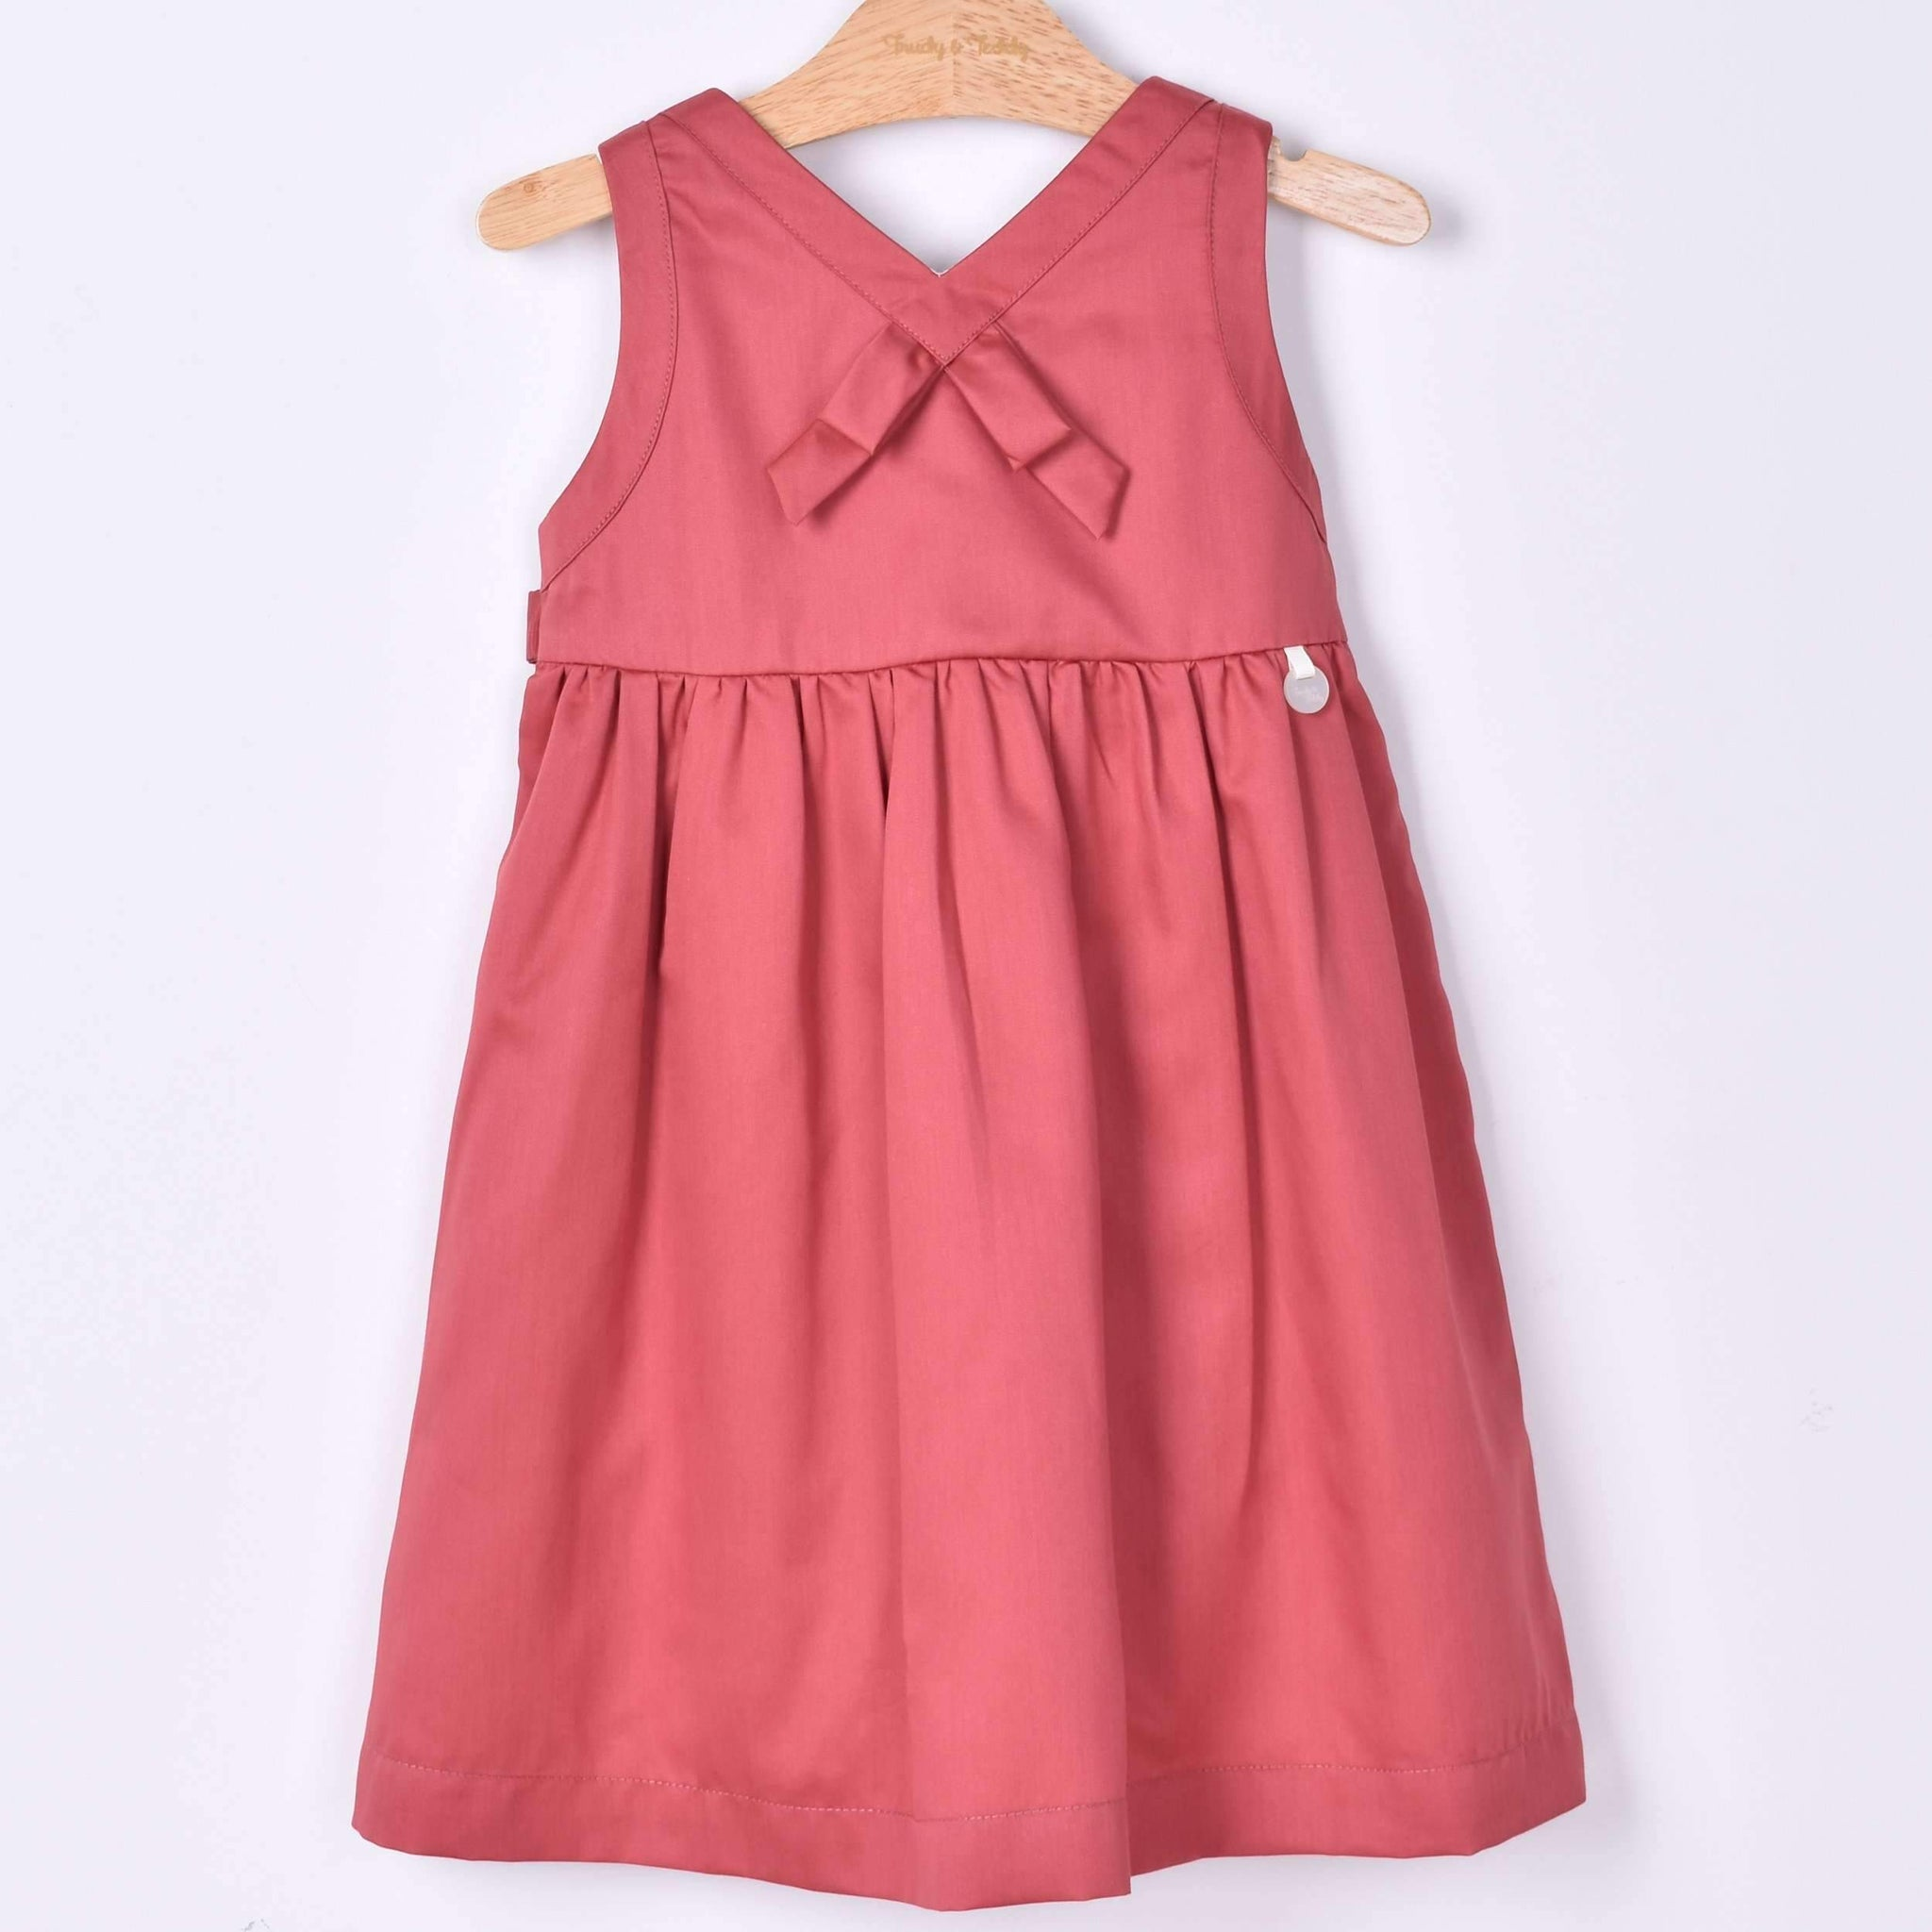 Trudy & Teddy Toddler Girl Sleeveless Dress 815087-311 : Buy Trudy & Teddy online at CMG.MY